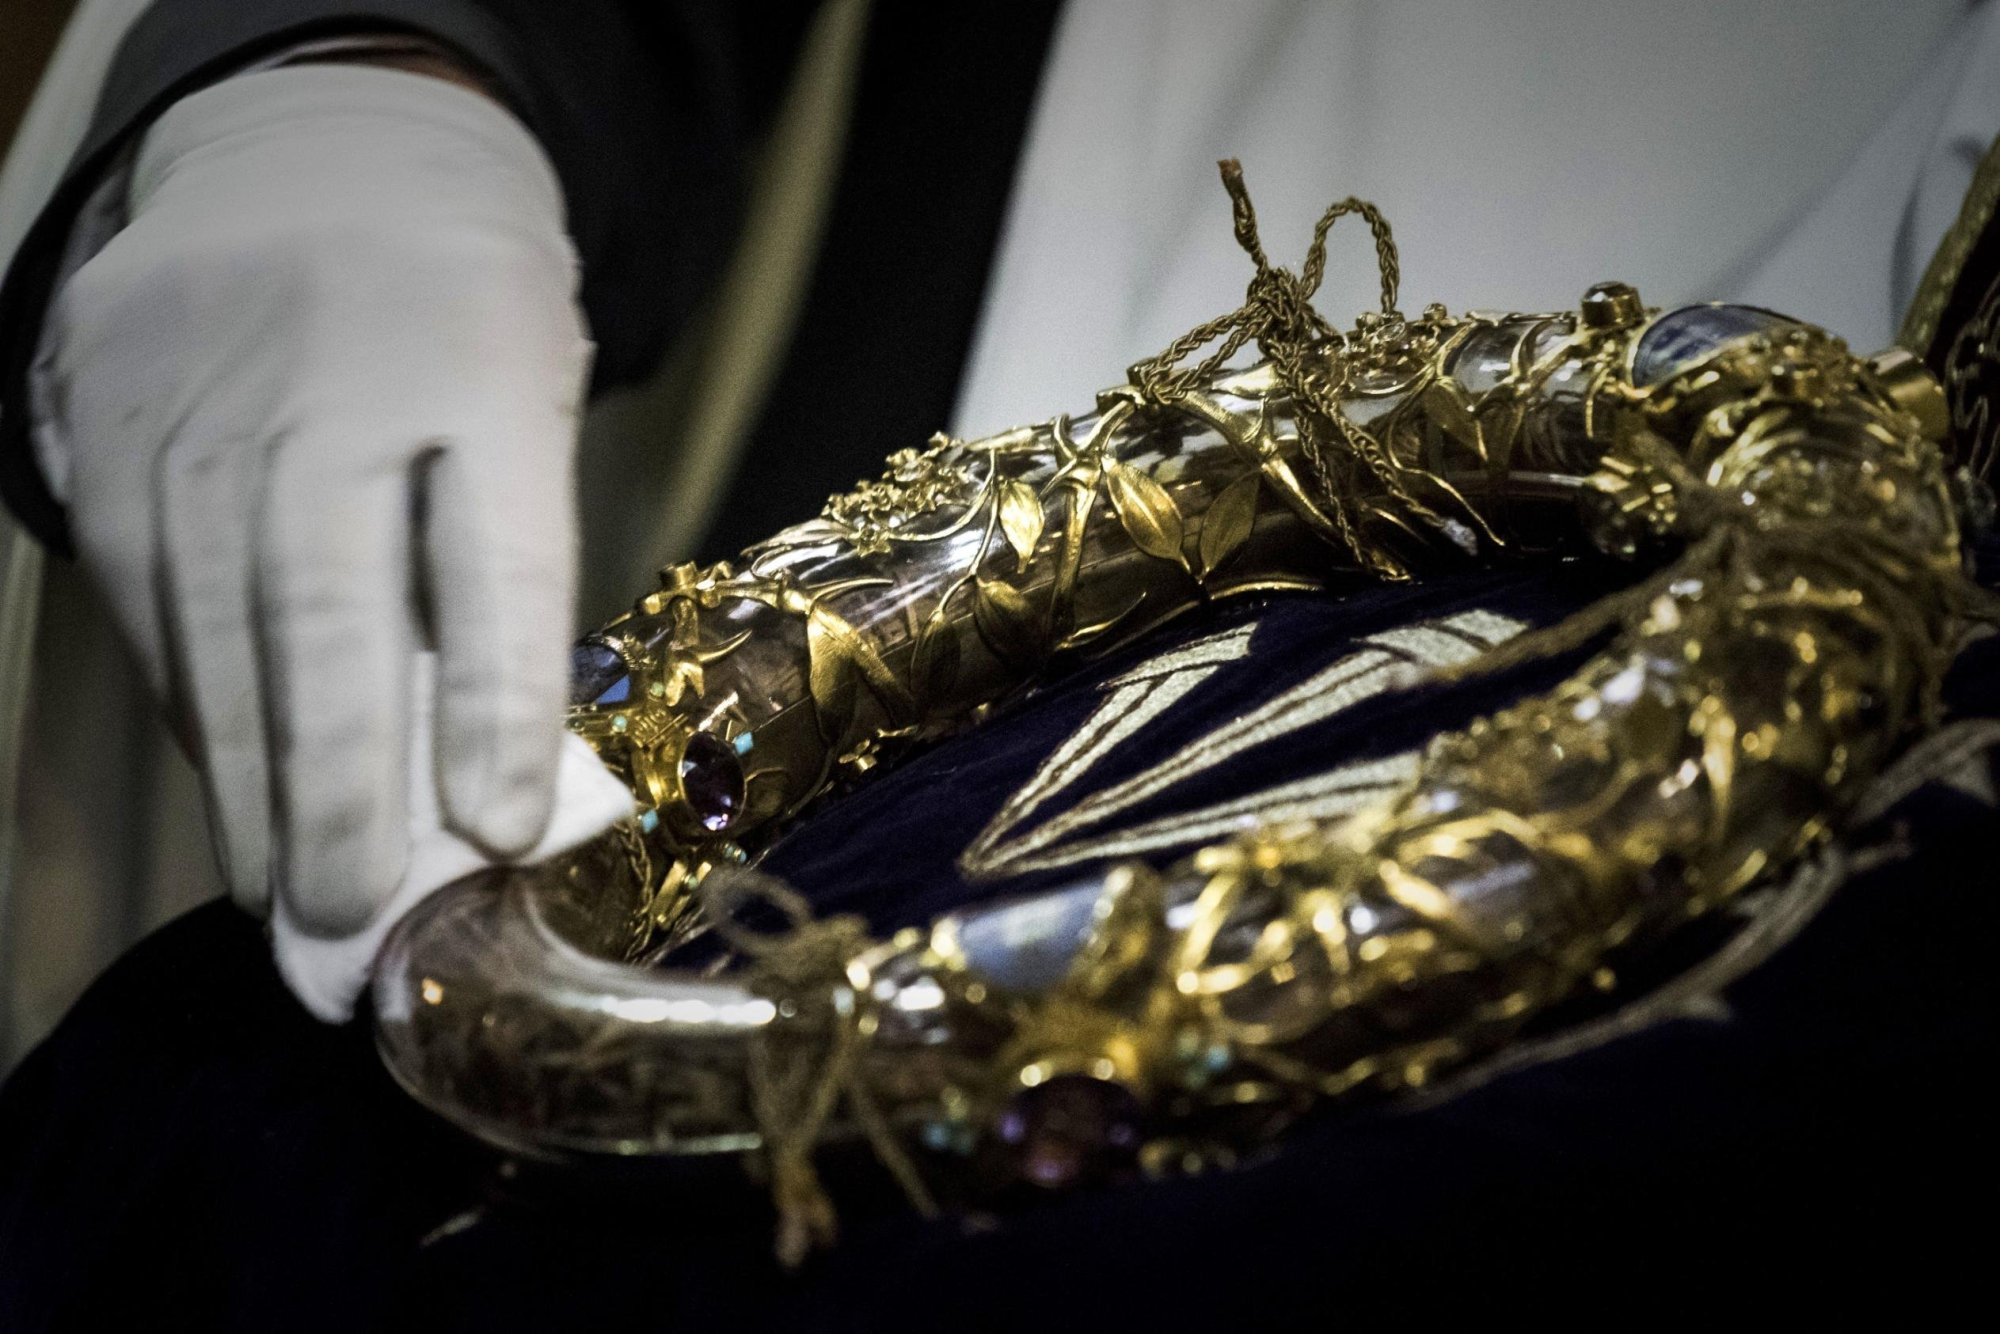 The Crown of Thorns is a relic of the passion of Christ.